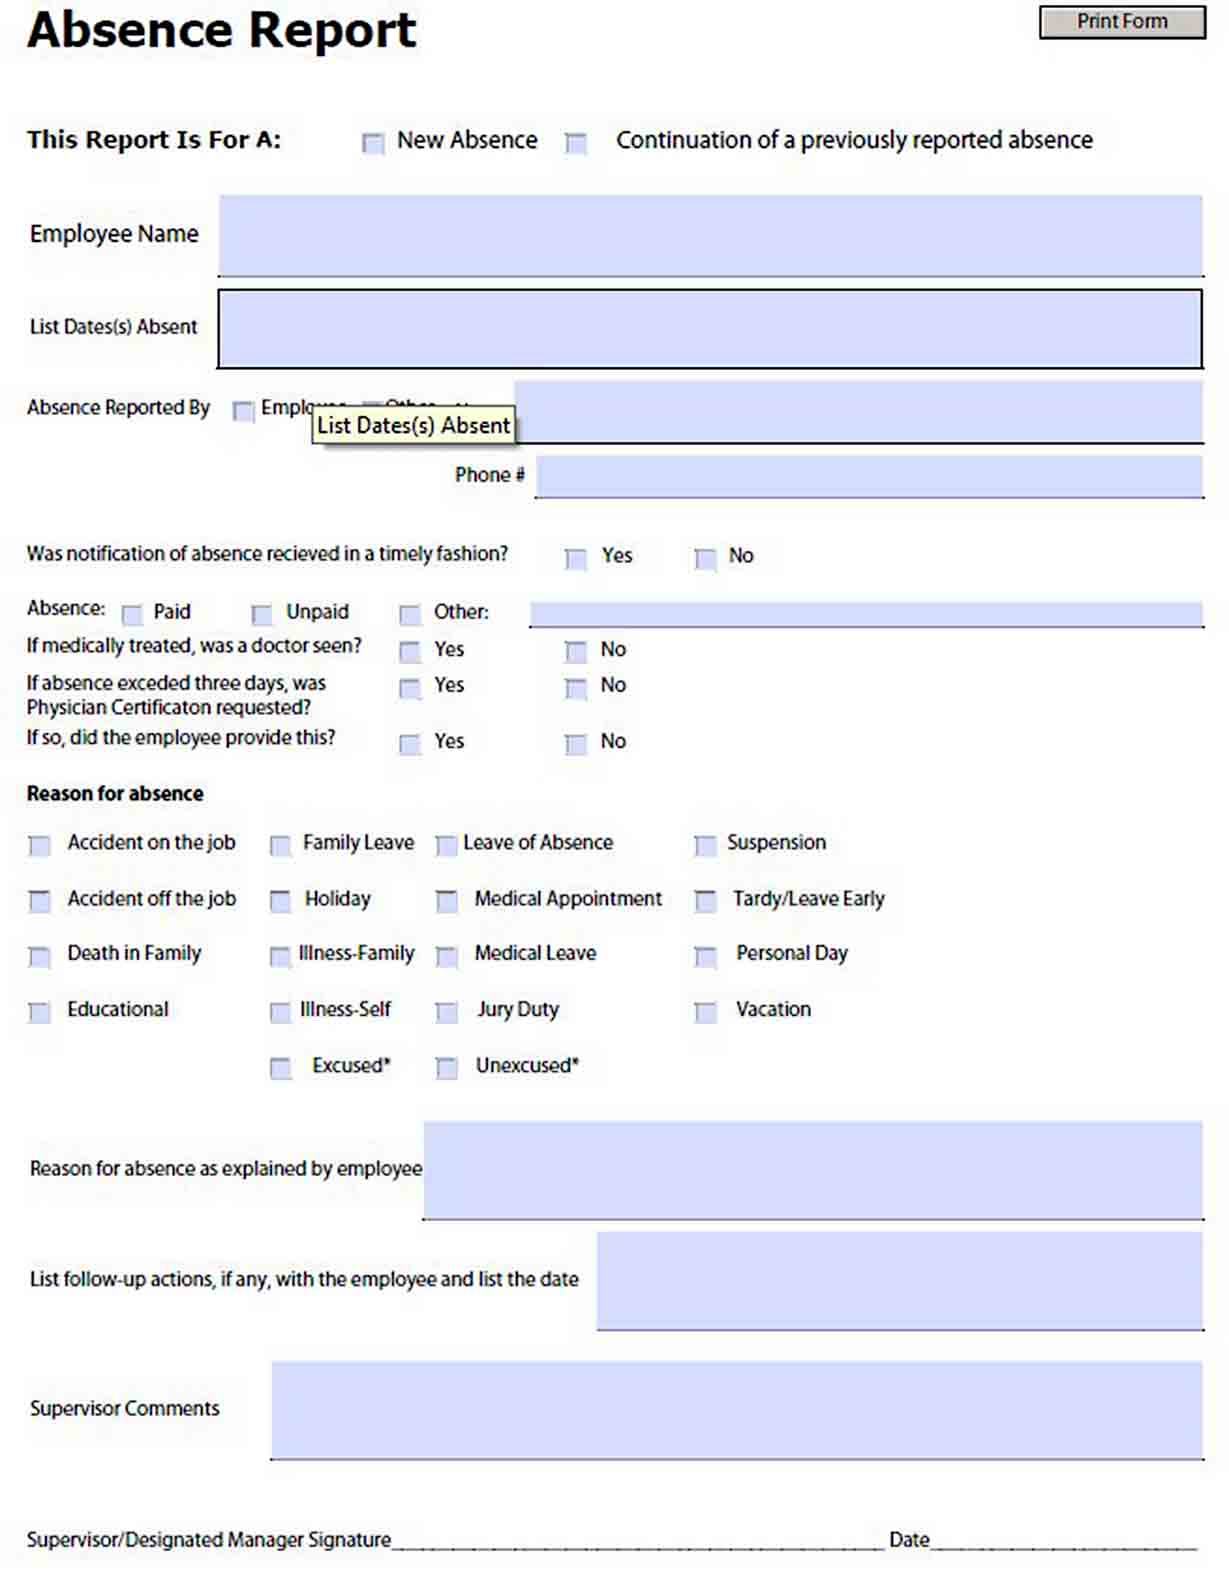 Employee Absence Report sample